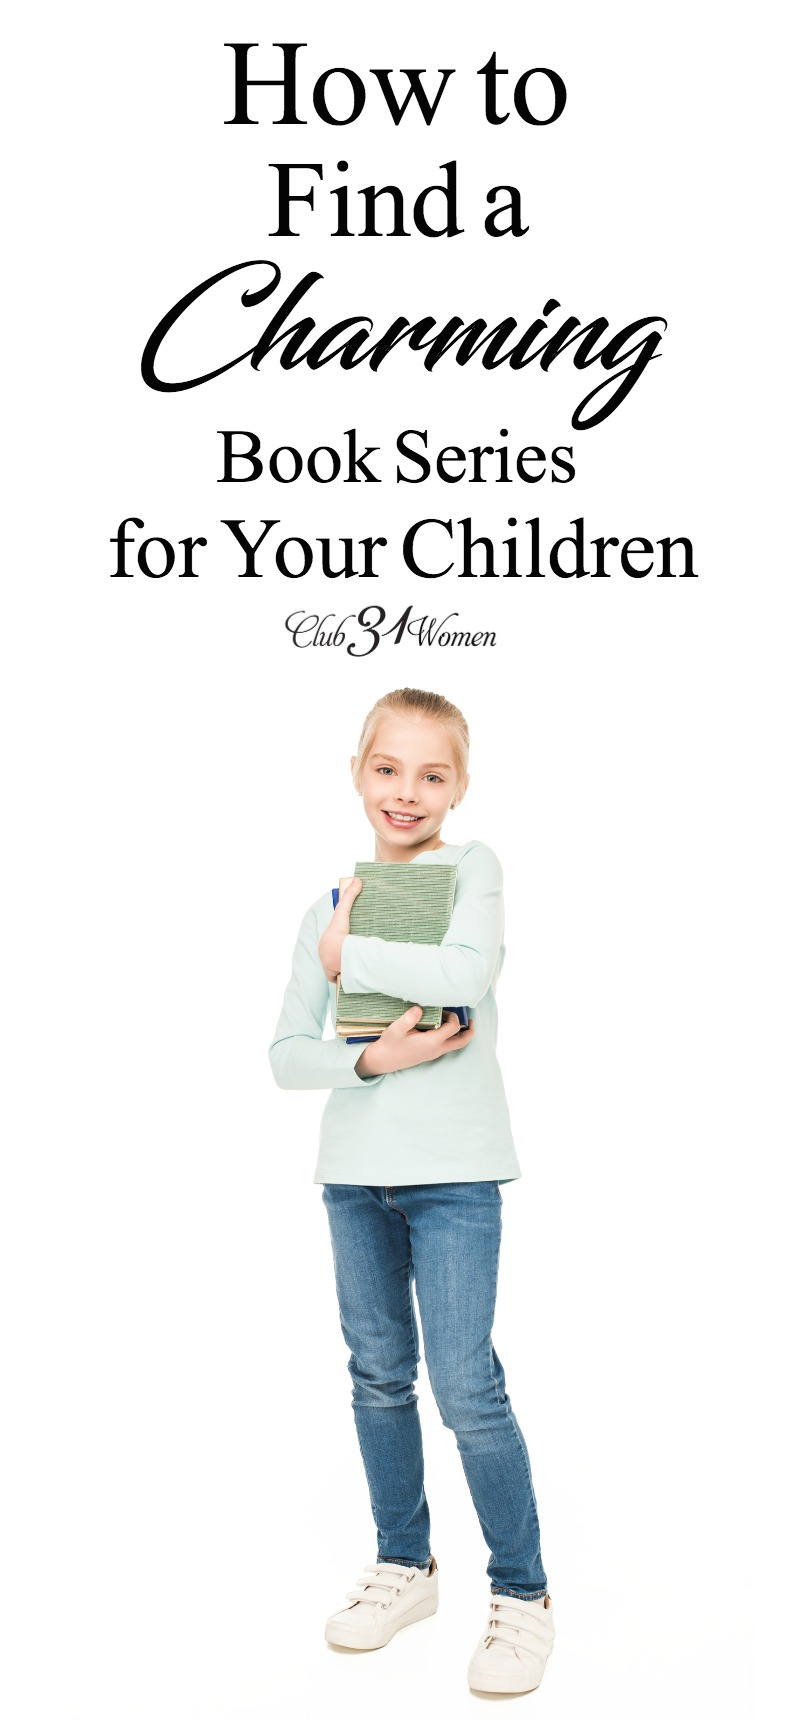 How to Find a Charming Book Series for Your Children via @Club31Women